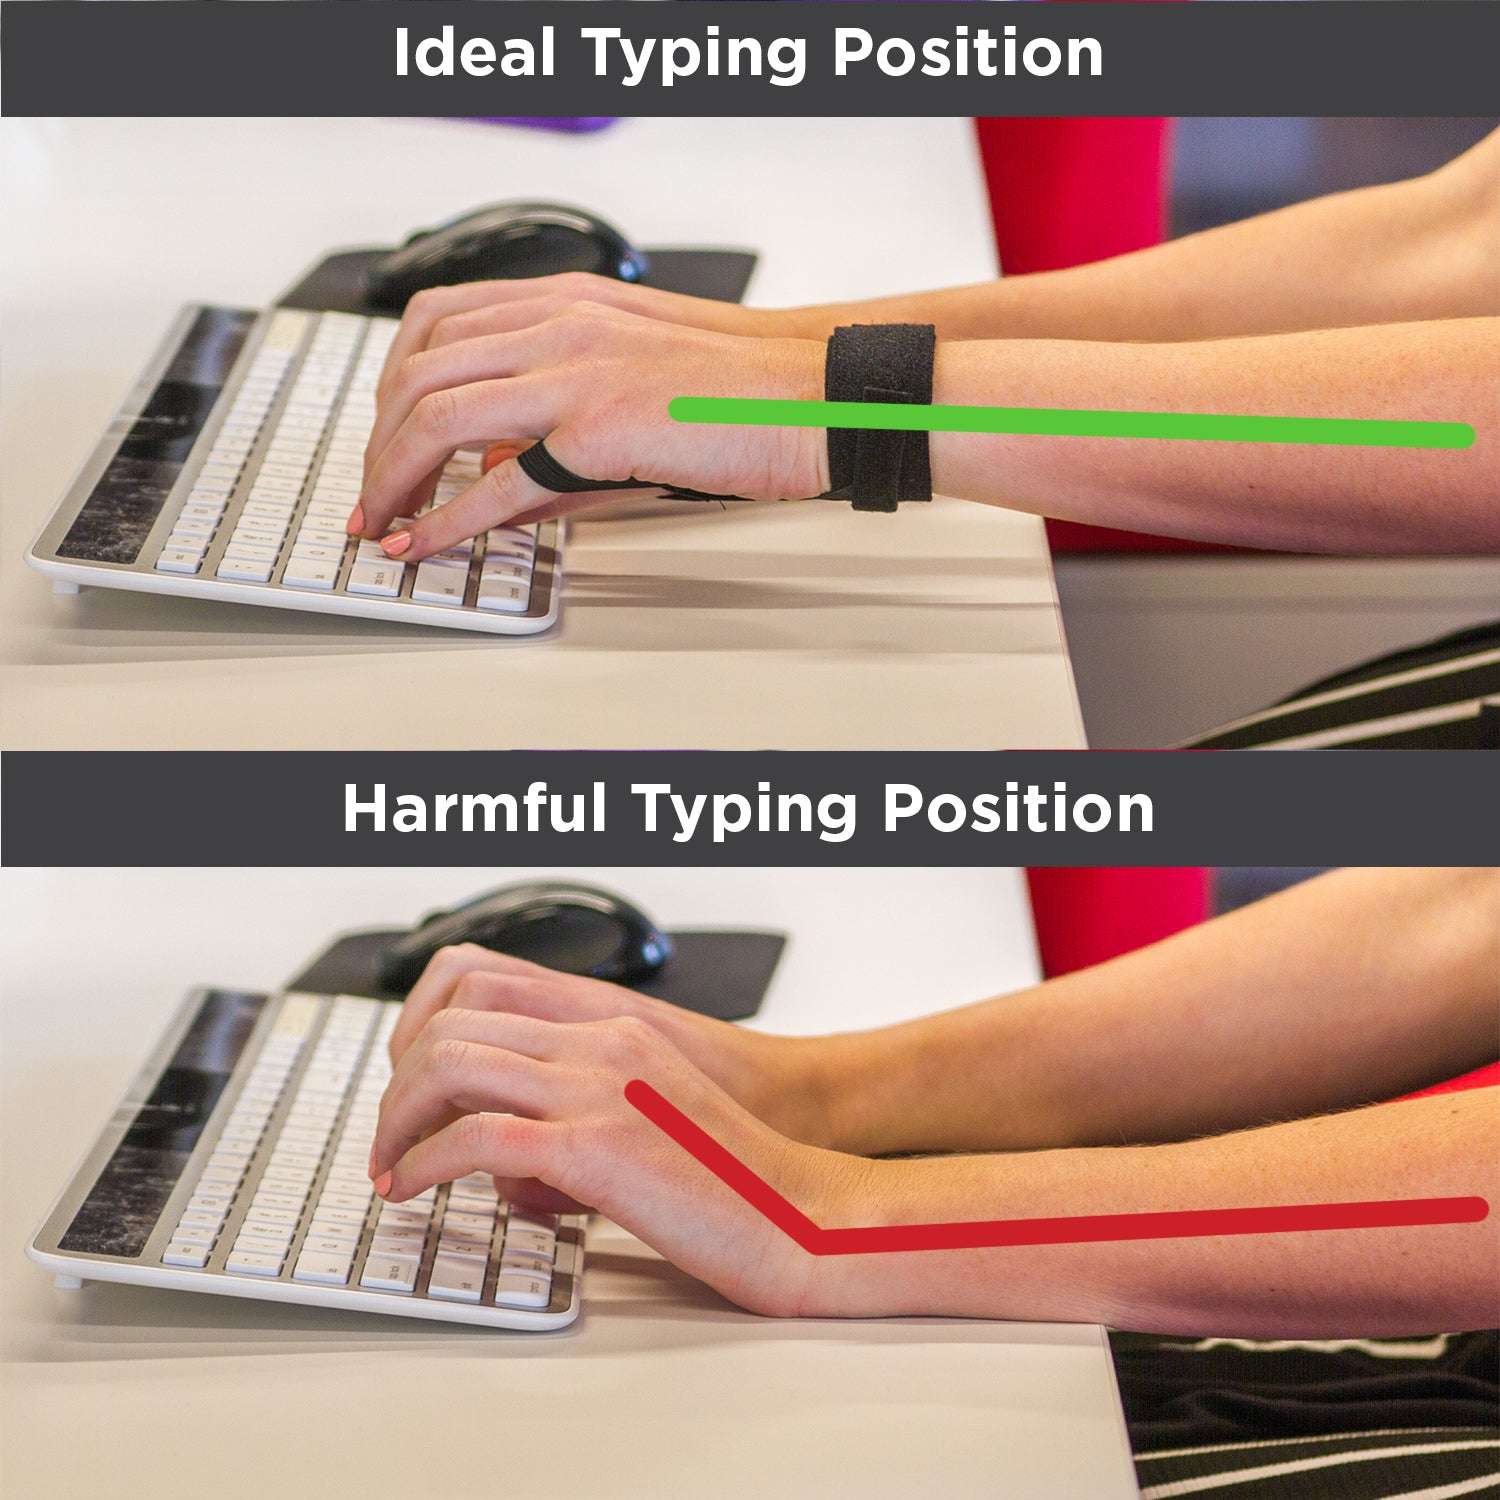 how your wrist should sit while working at a computer to prevent carpal tunnel